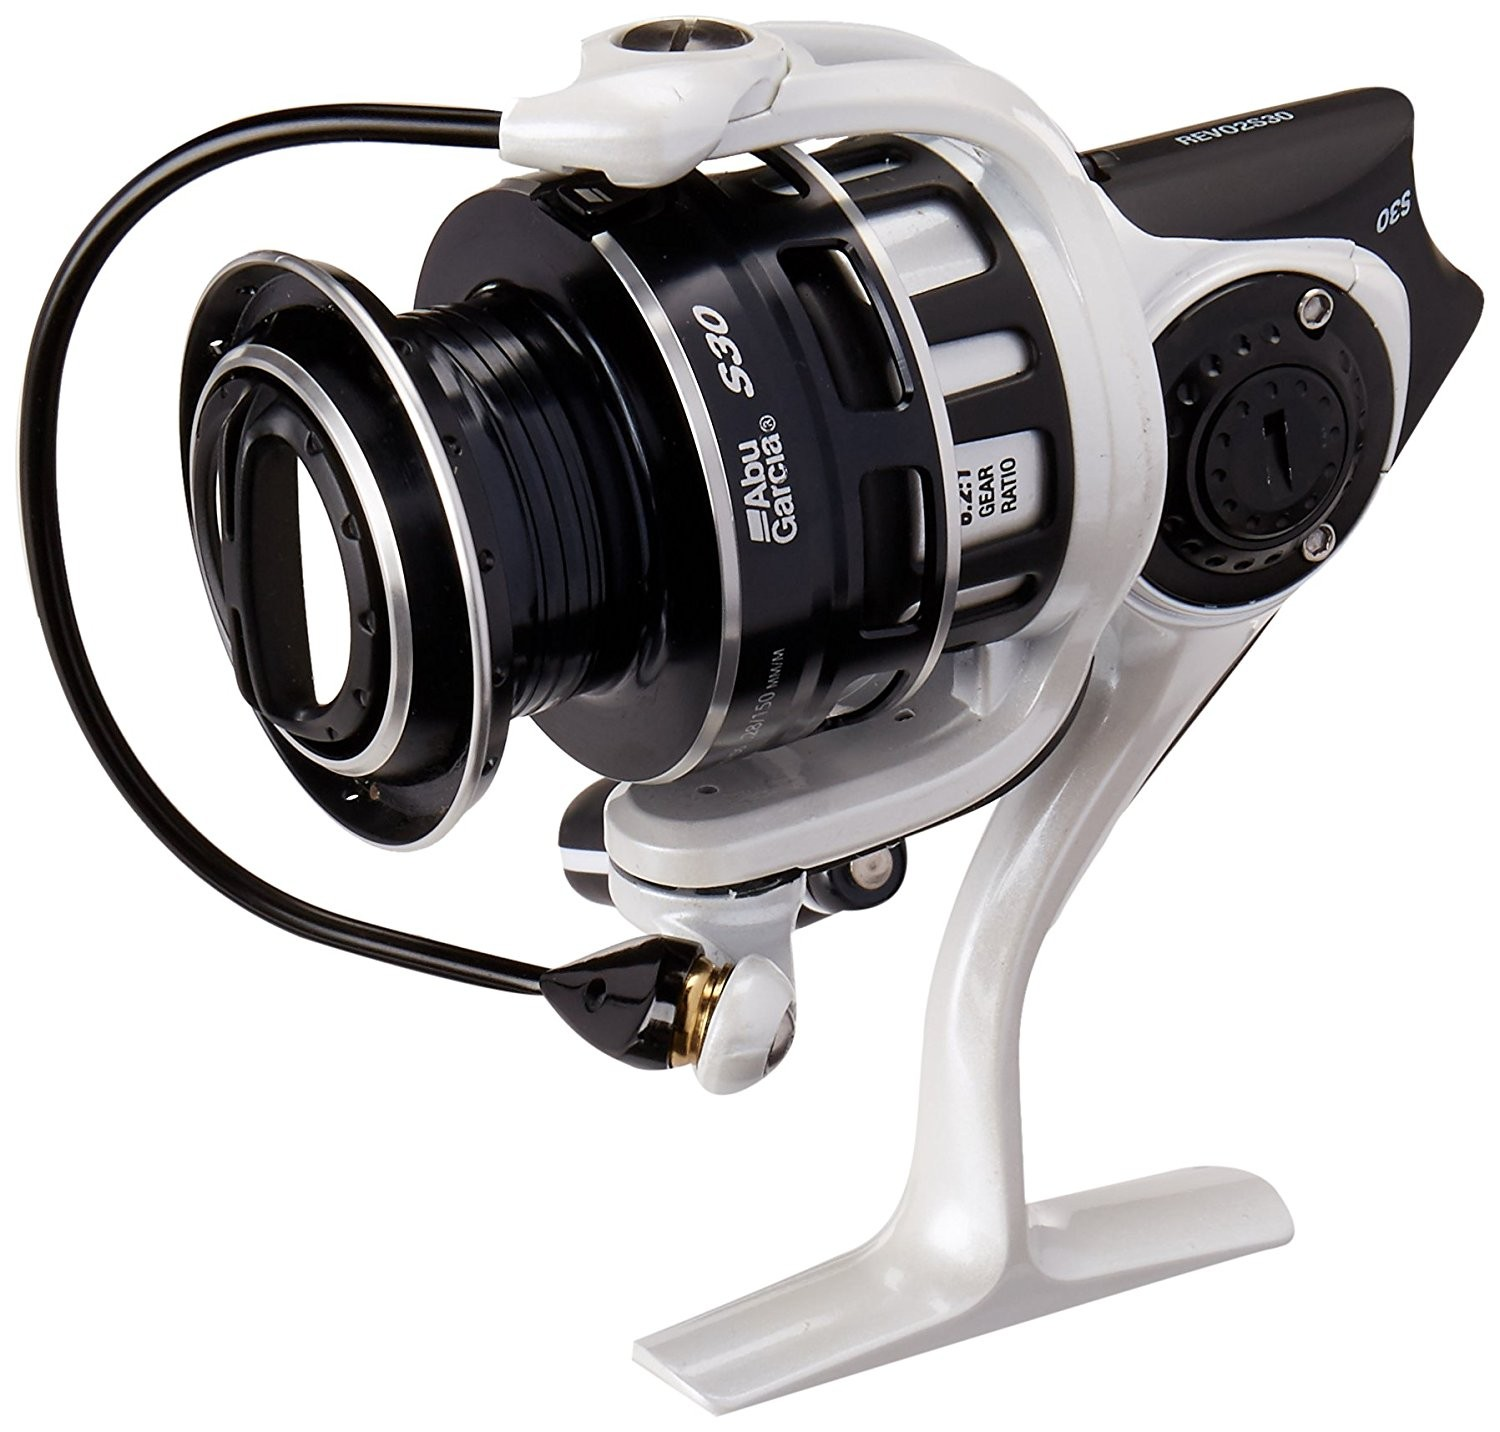 hight resolution of abu garcia parts diagram amazon abu garcia revo s spinning reel sports outdoors of abu